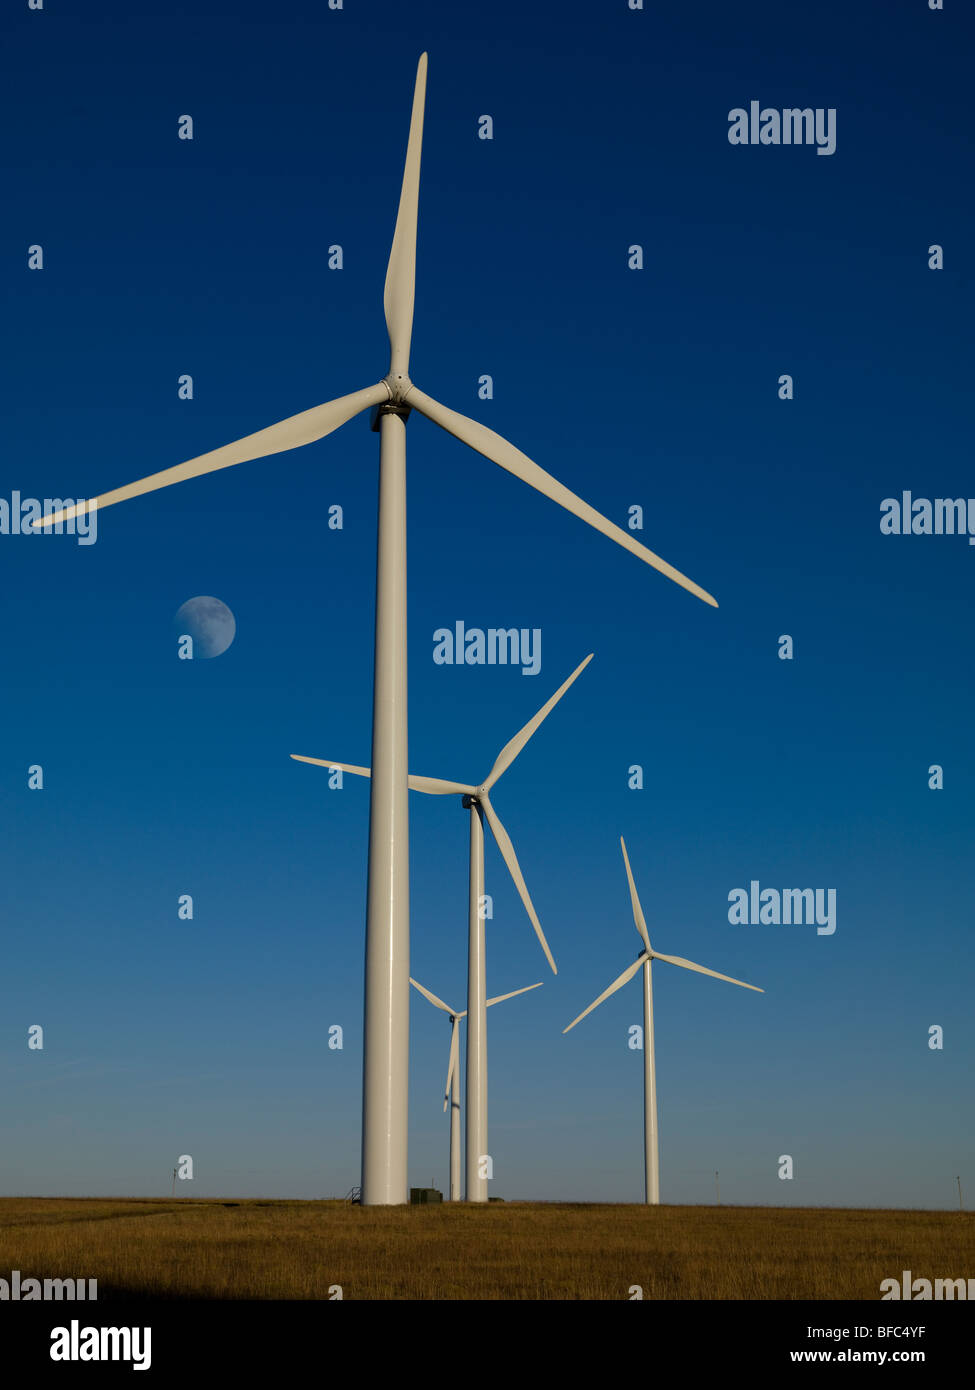 Wind Farm in the Flint Hills near Beaumont, Kansas, USA, afternoon toward the East with moon rising. - Stock Image